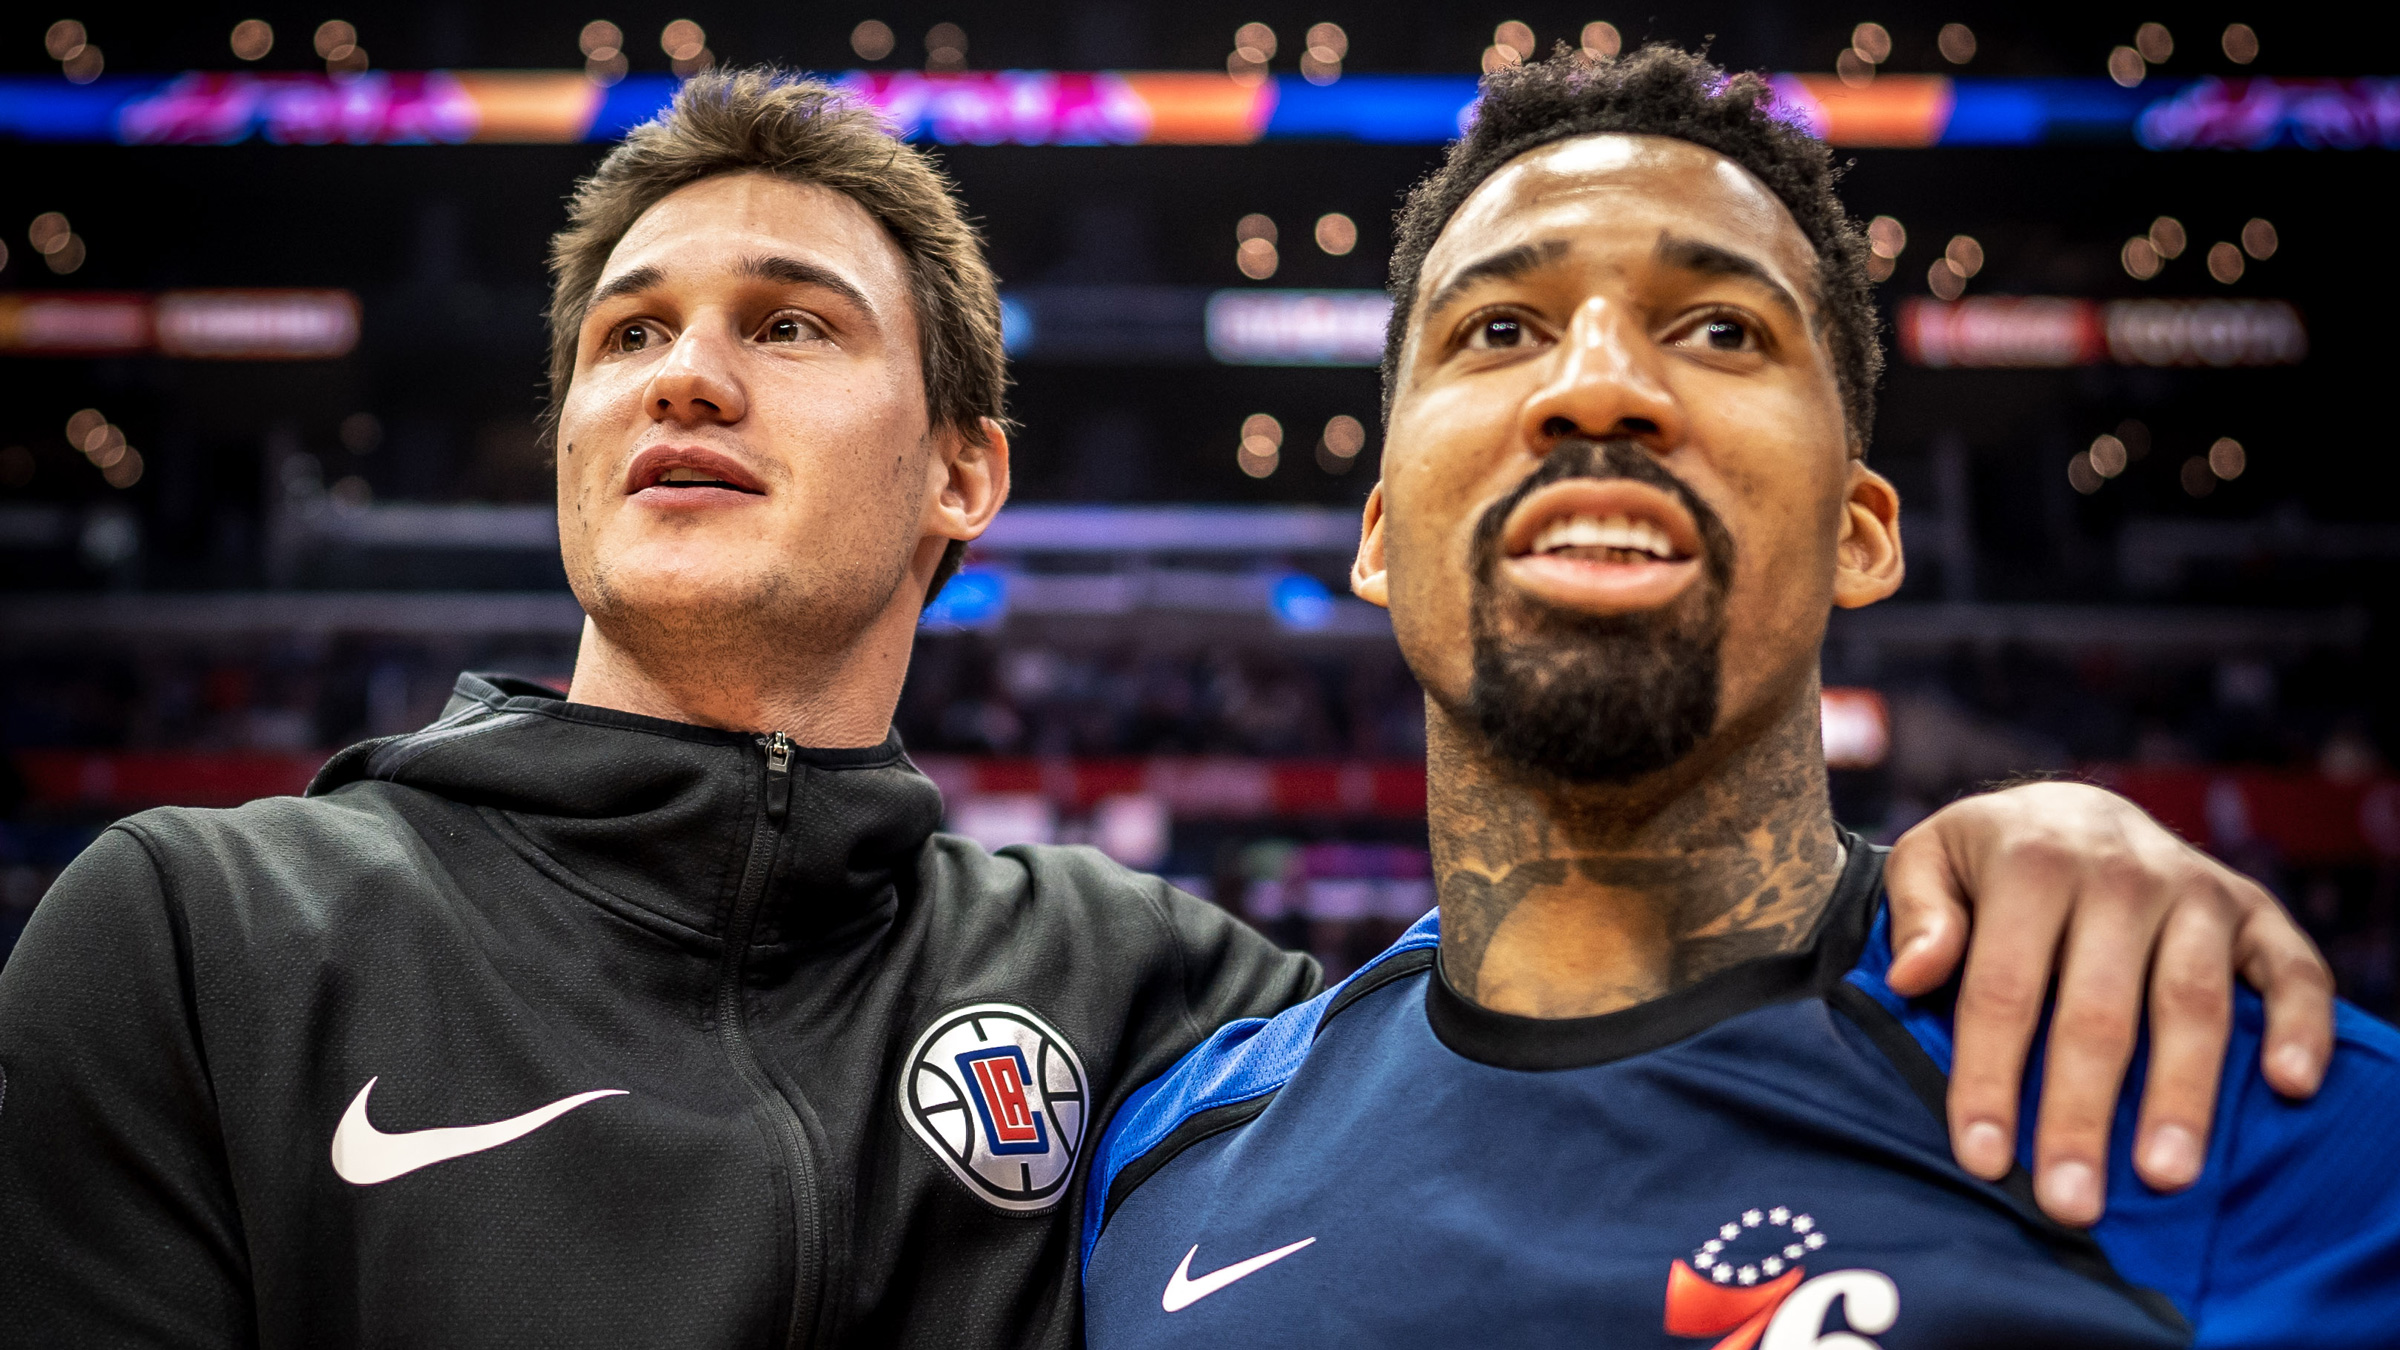 Danilo Gallinari and Wilson Chandler